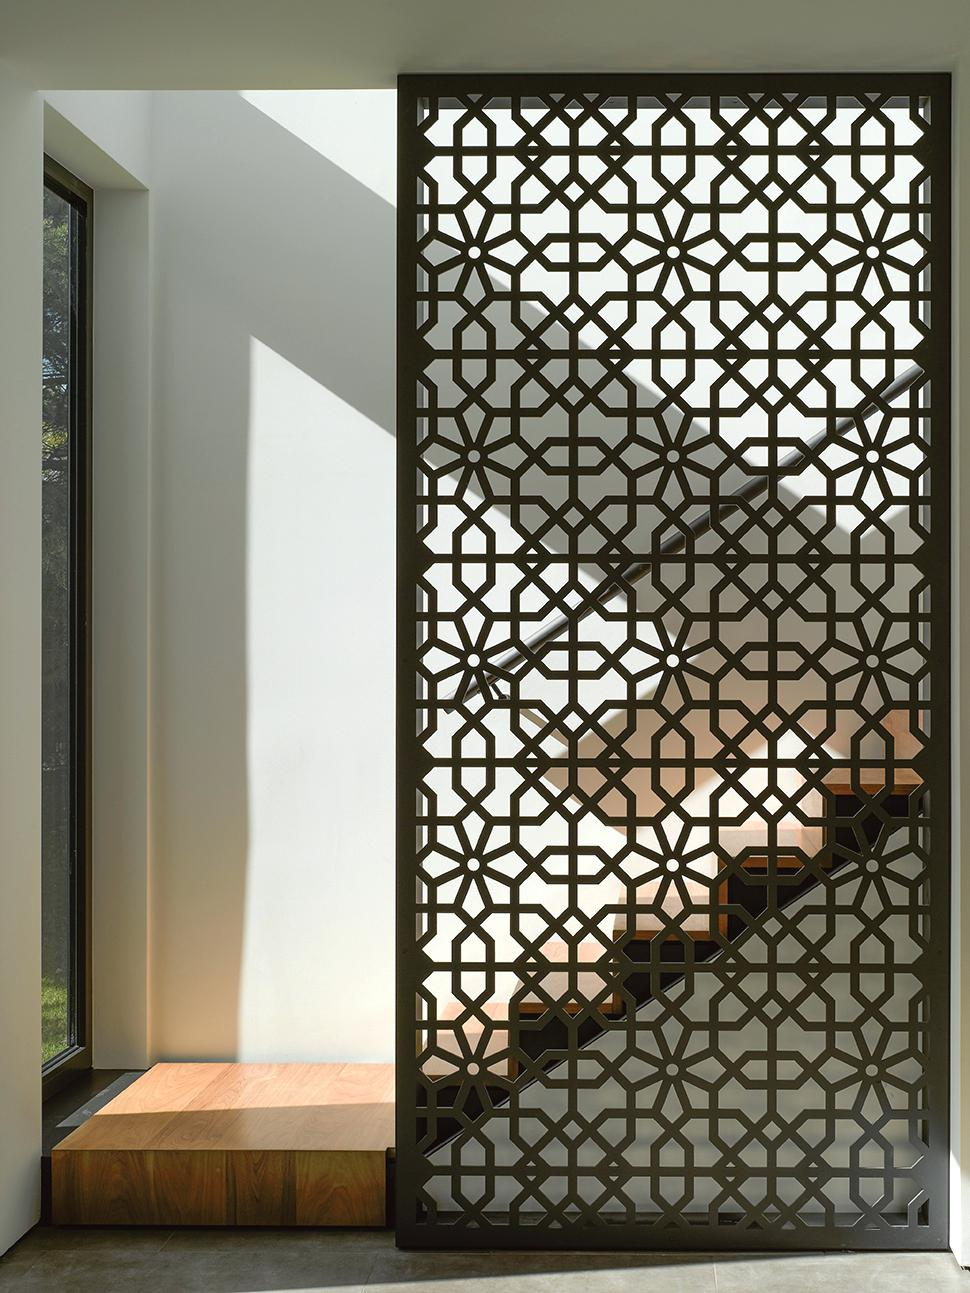 room-divider-uk-echo-house-by-paul-raff-studio-architects...